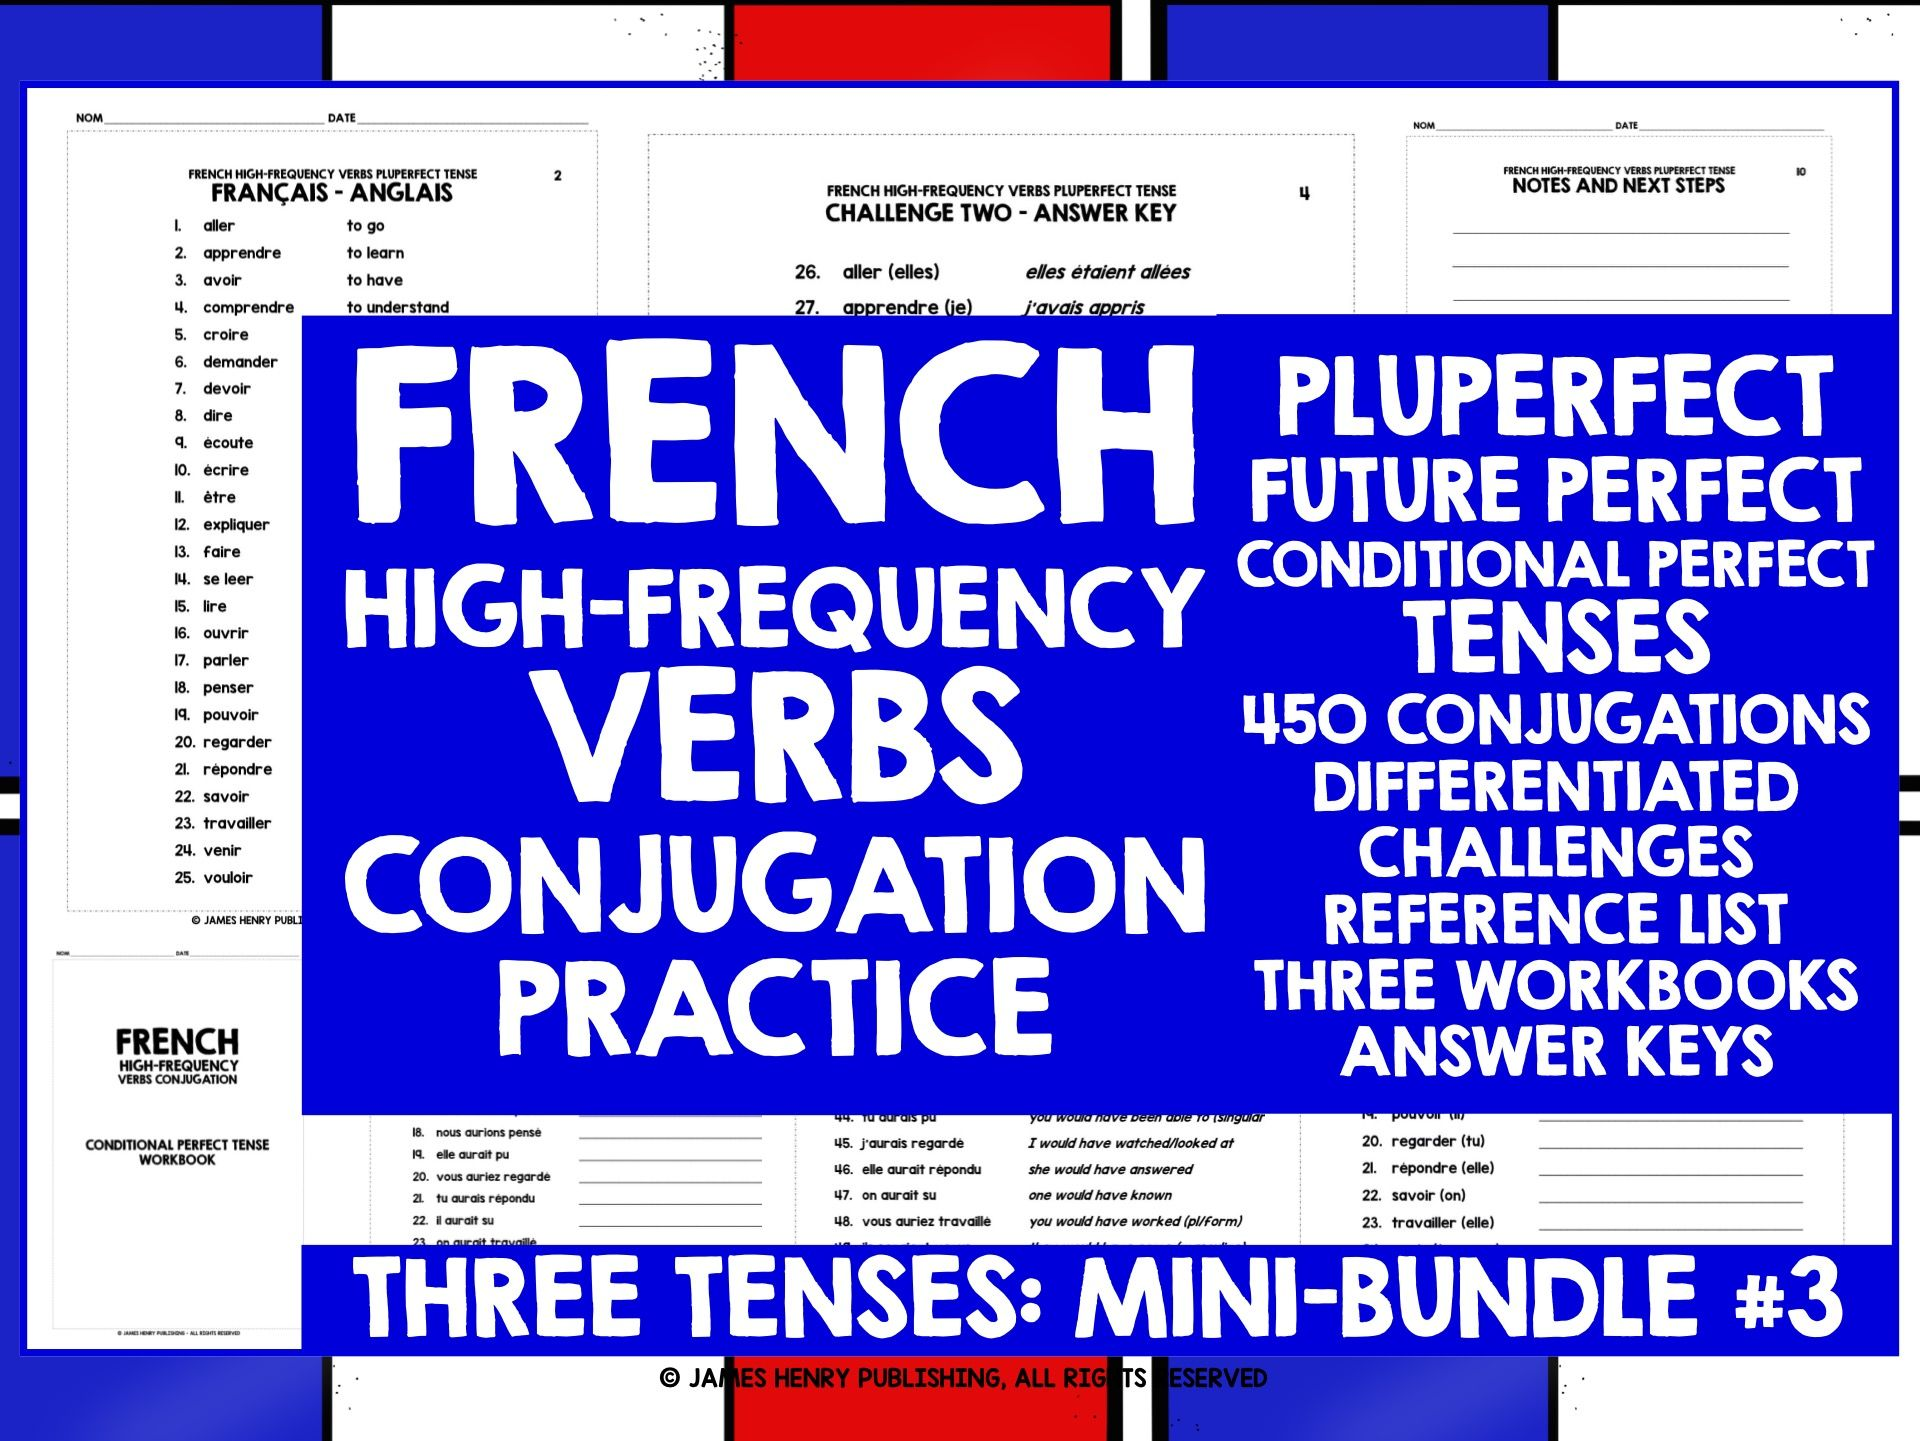 FRENCH HIGH-FREQUENCY VERBS CONJUGATION MINI-BUNDLE 3